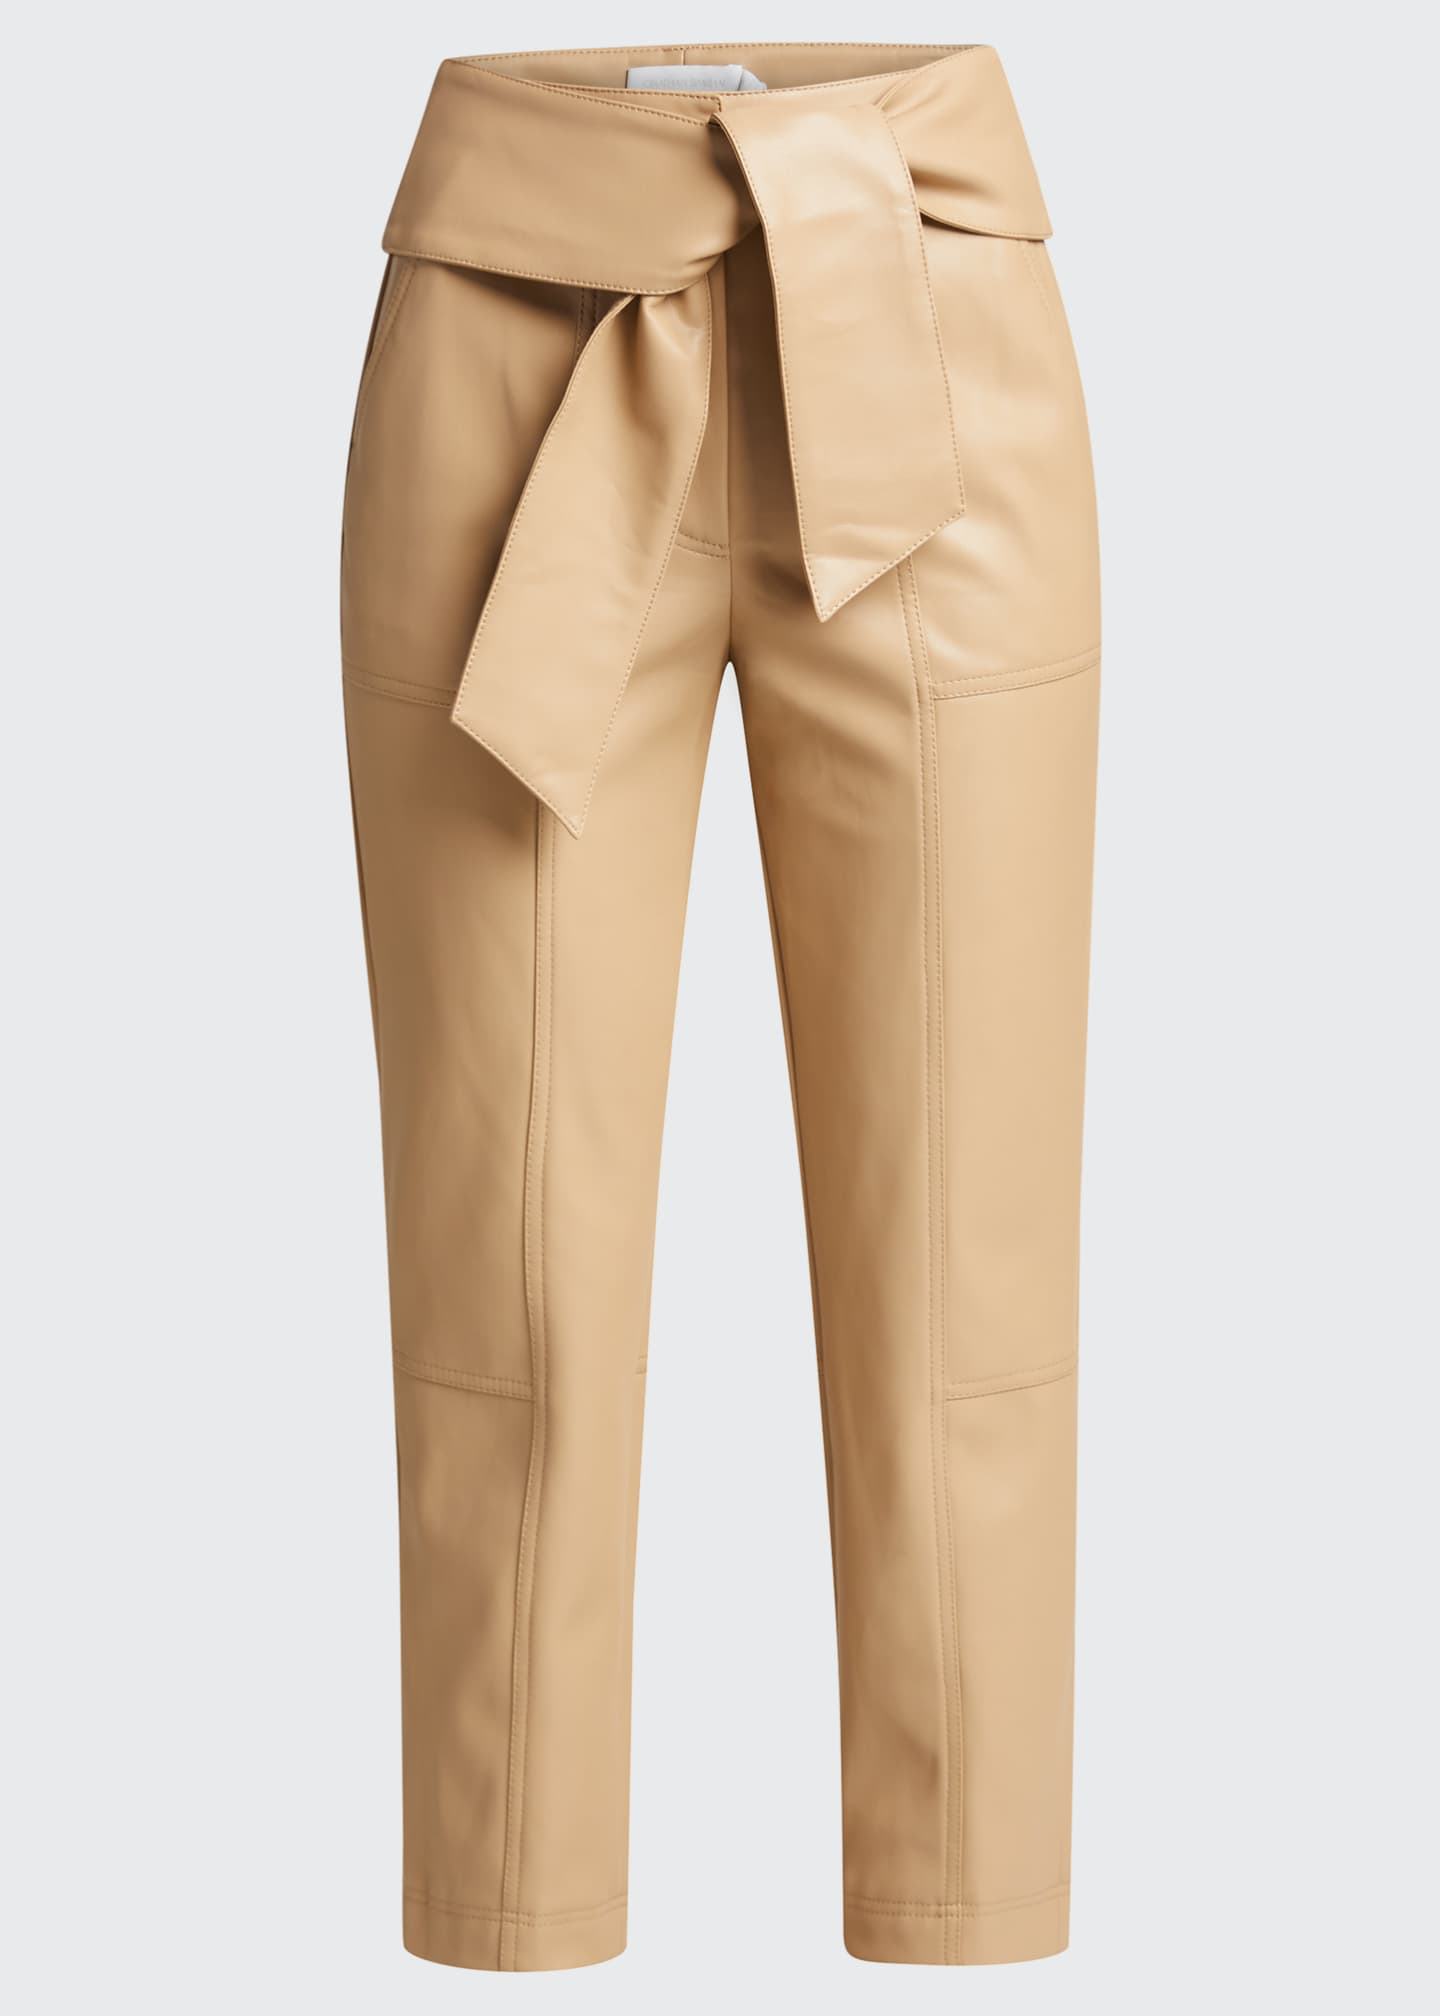 Image 5 of 5: Tessa Vegan Leather Tie-Waist Pants